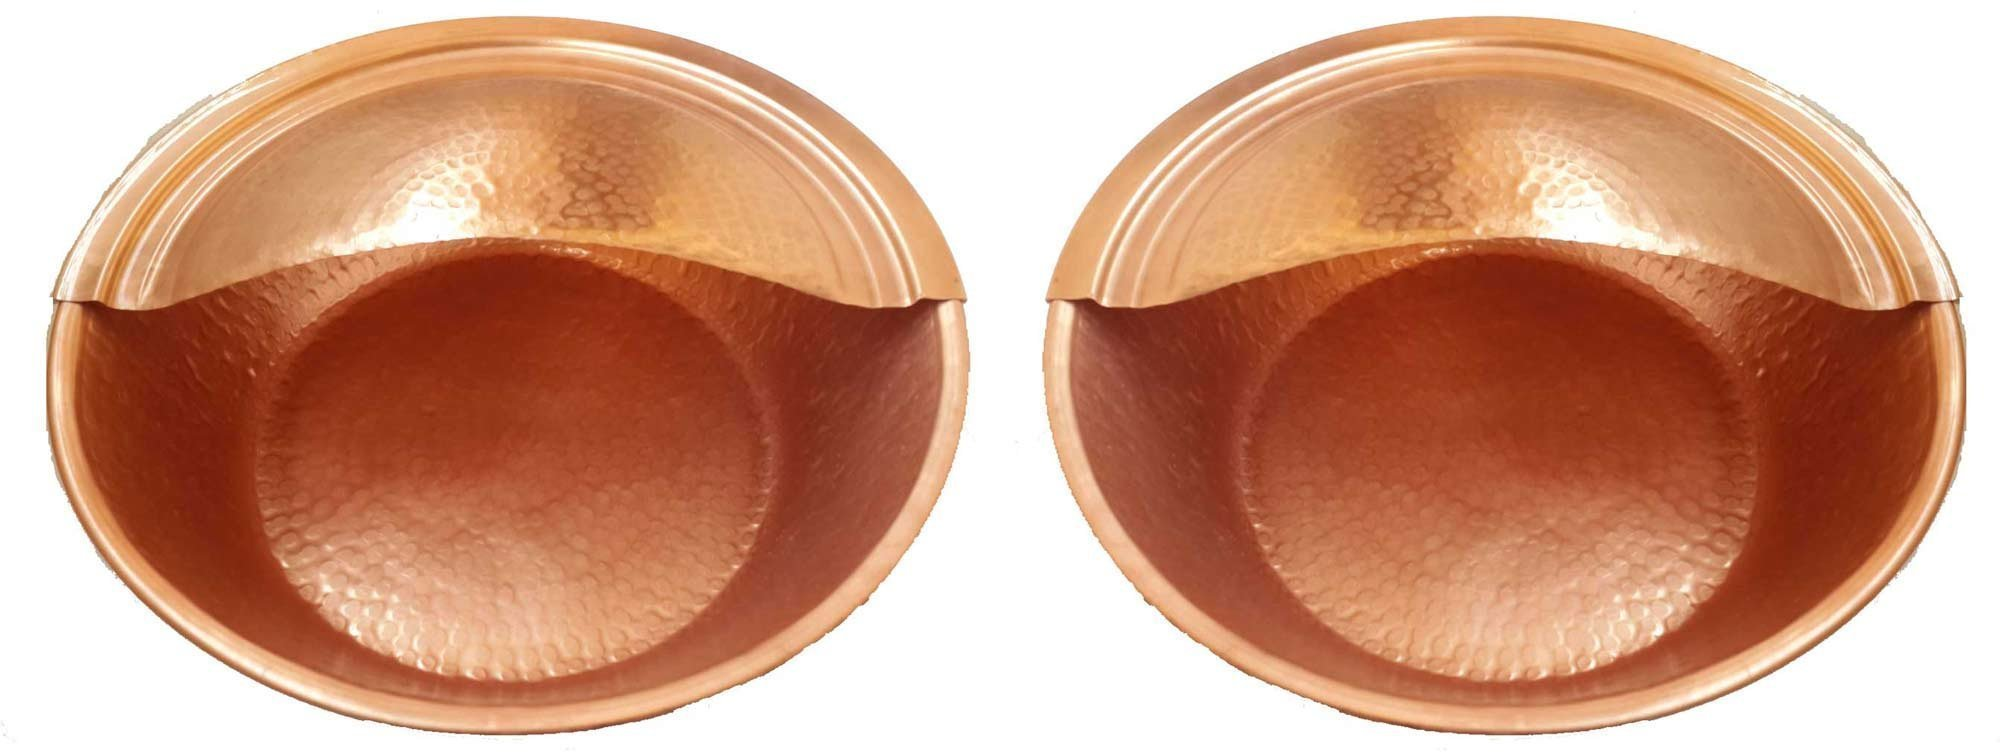 Egypt gift shops Pair Copper Foot Leg Fitness Care Therapy Massaging Pedicure Bowls Hot Warm Water DIY Soaking Soothing Basins